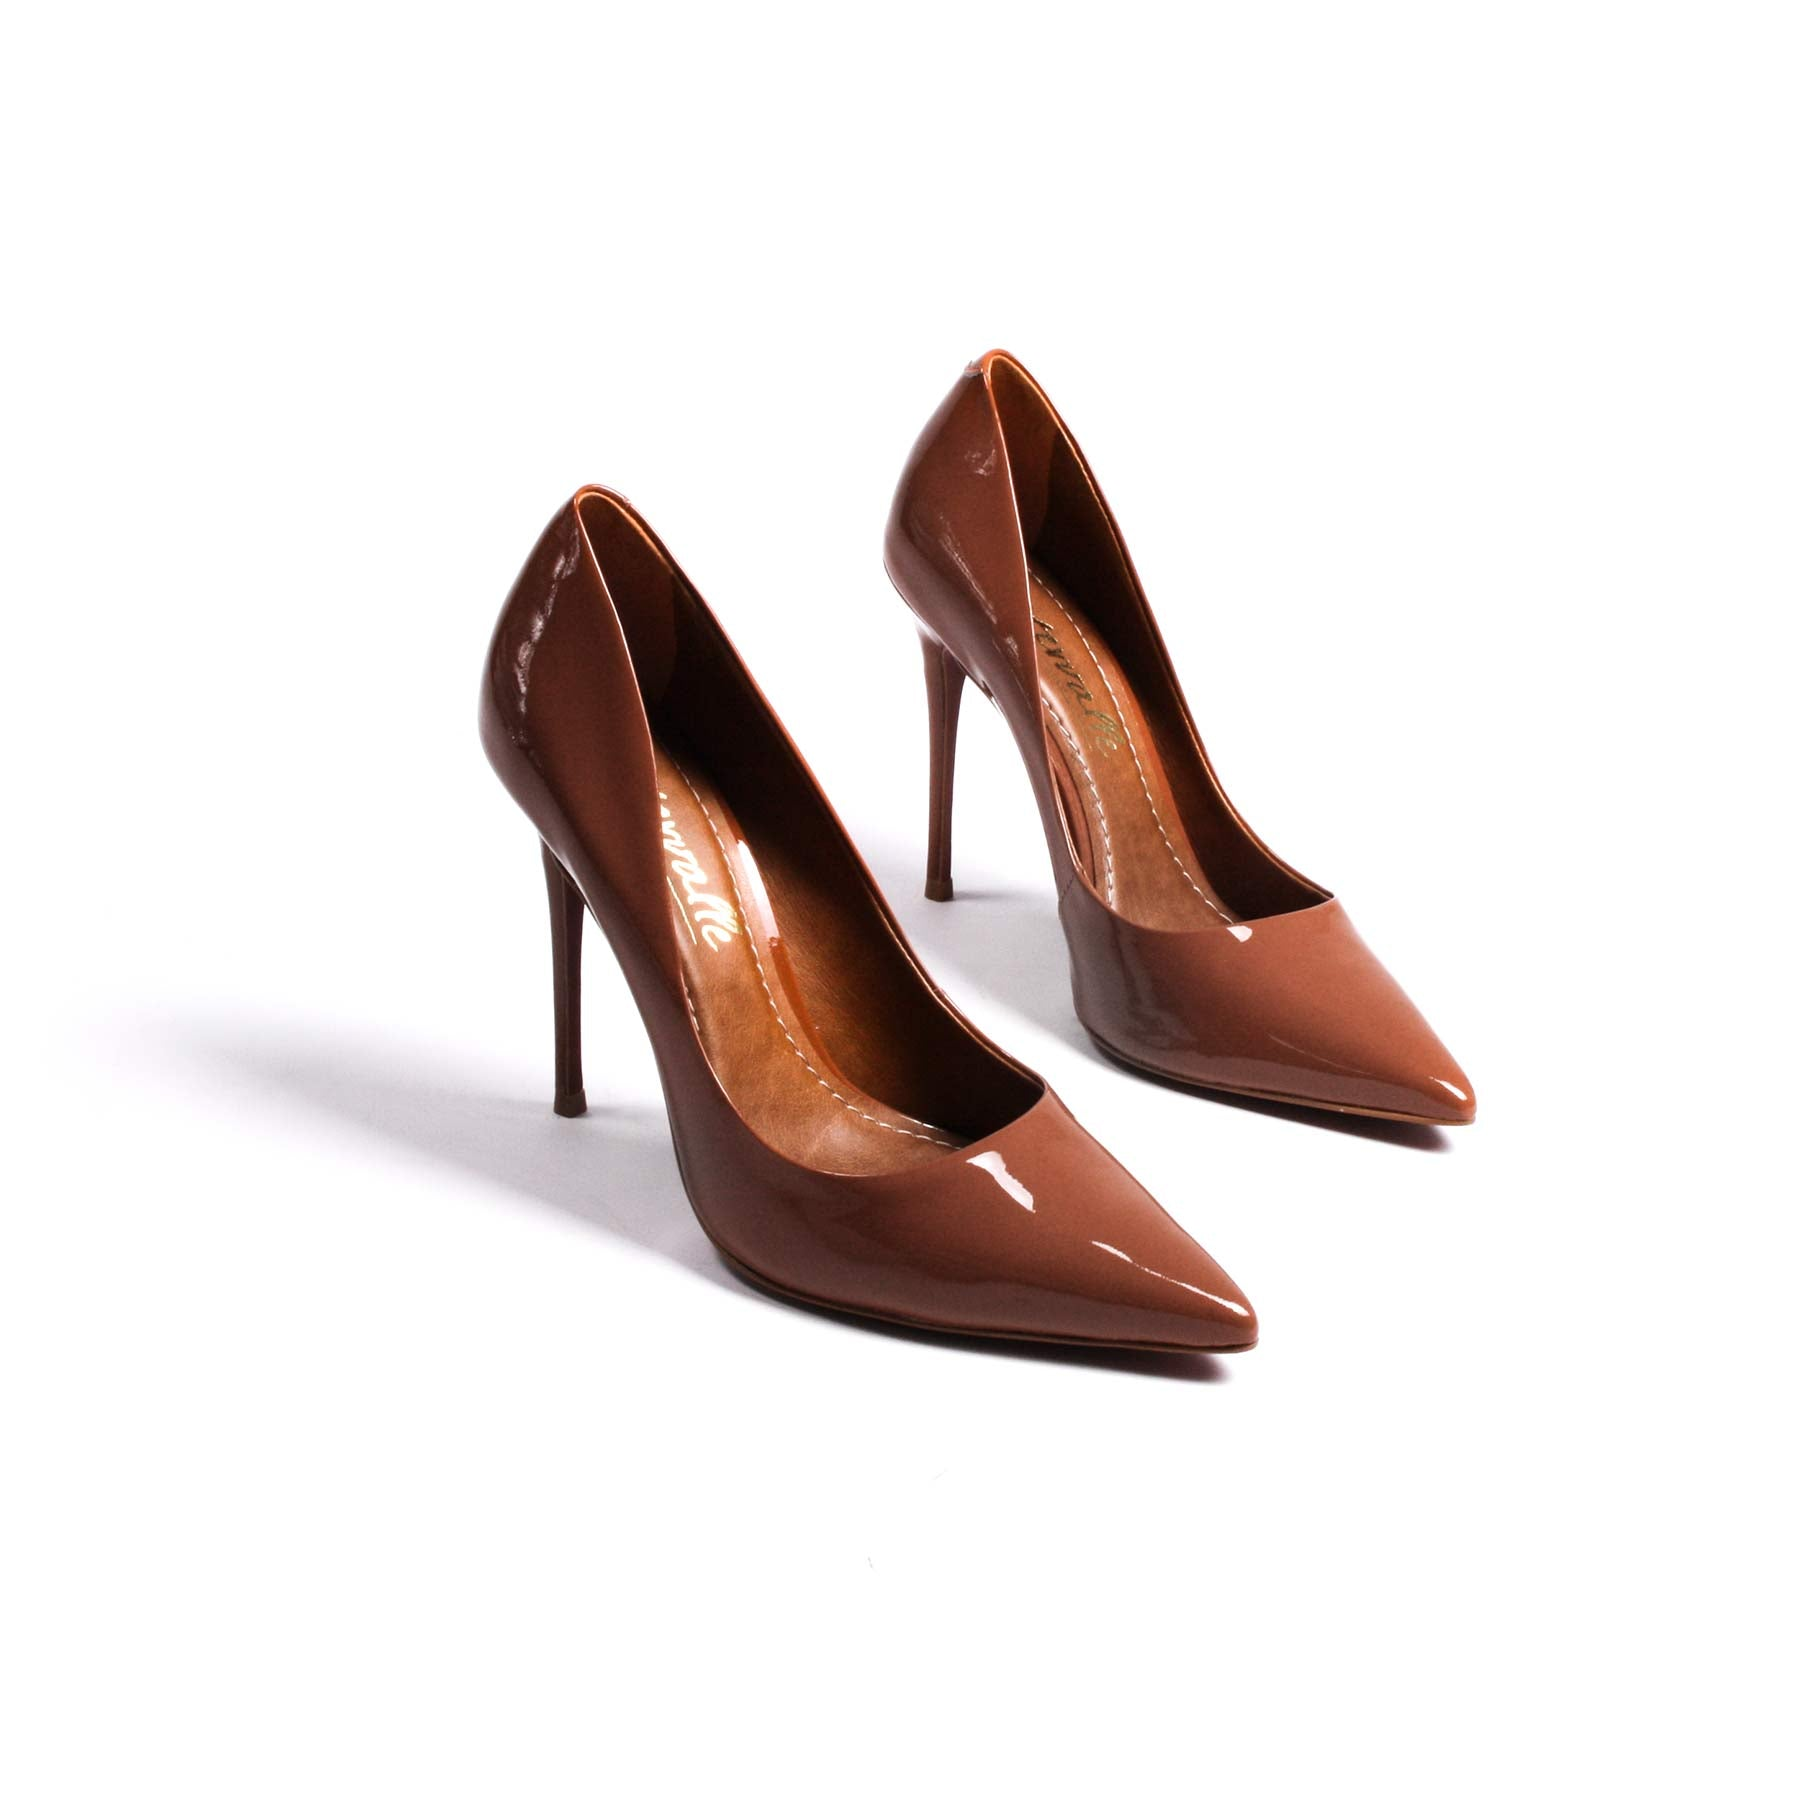 Teeva Brandy Patent Leather